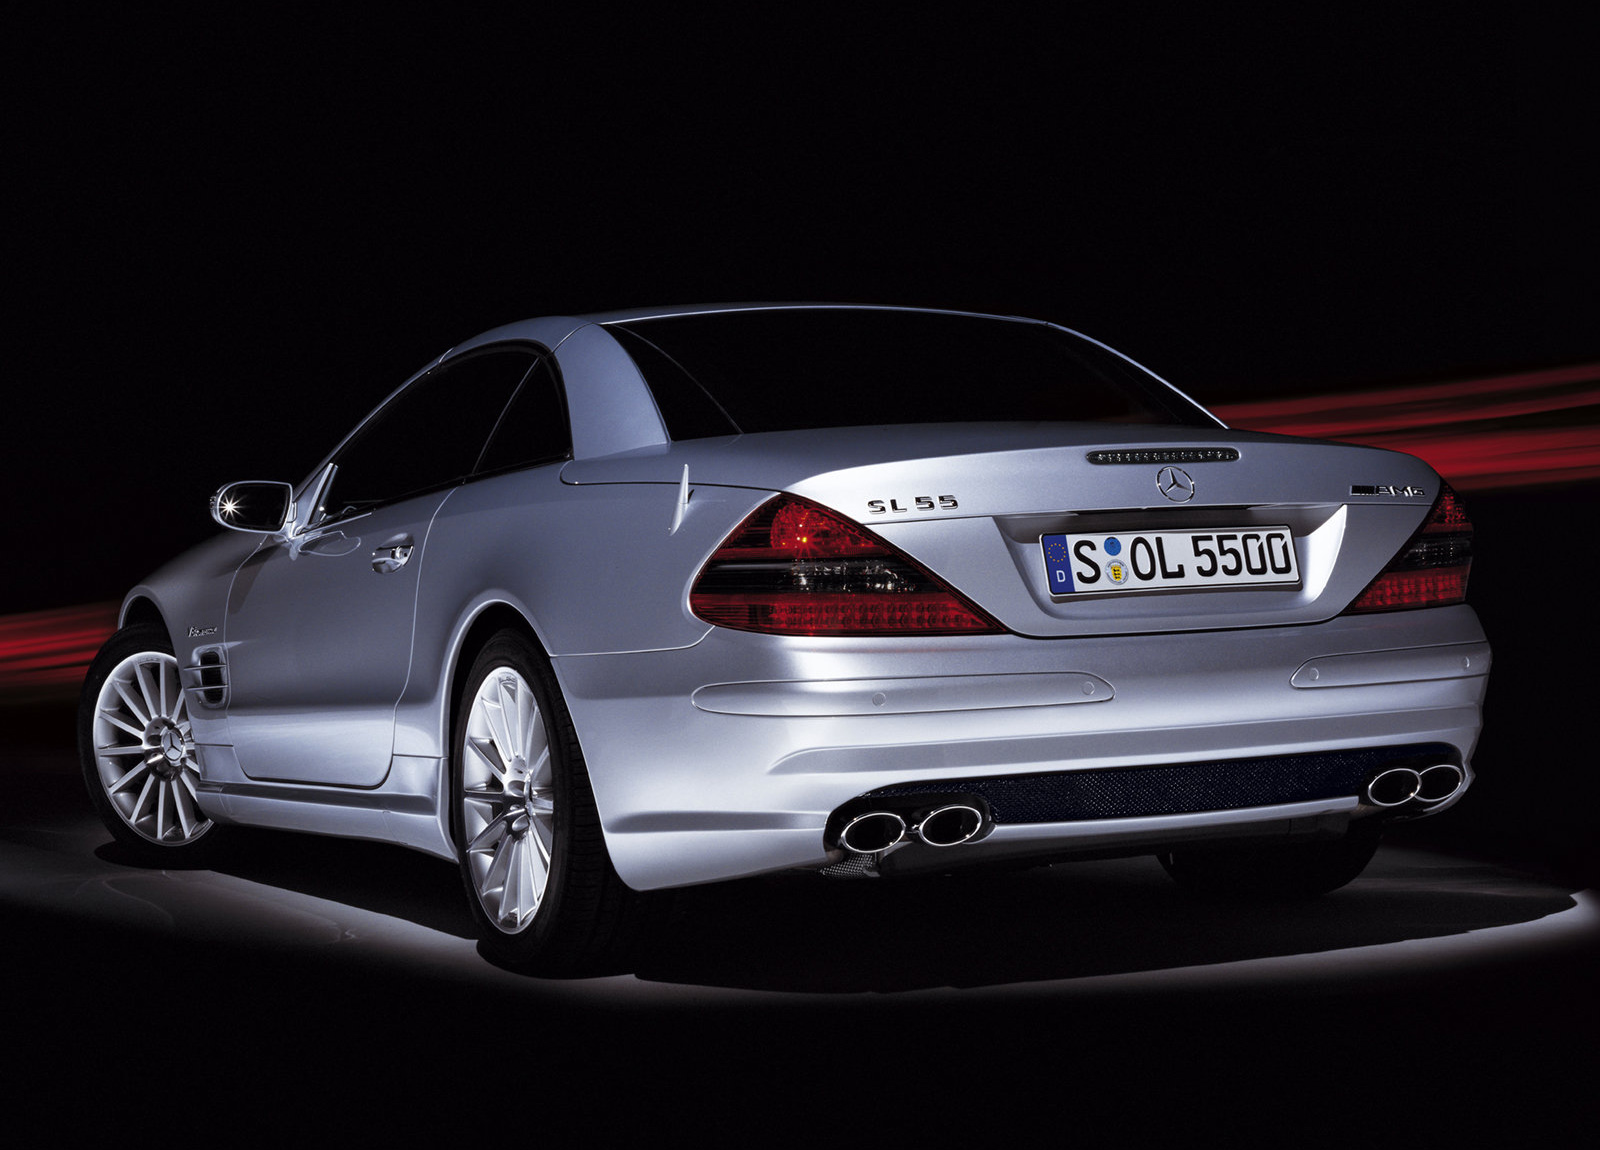 2006 mercedes benz sl55 amg hd pictures for Mercedes benz sl 55 amg